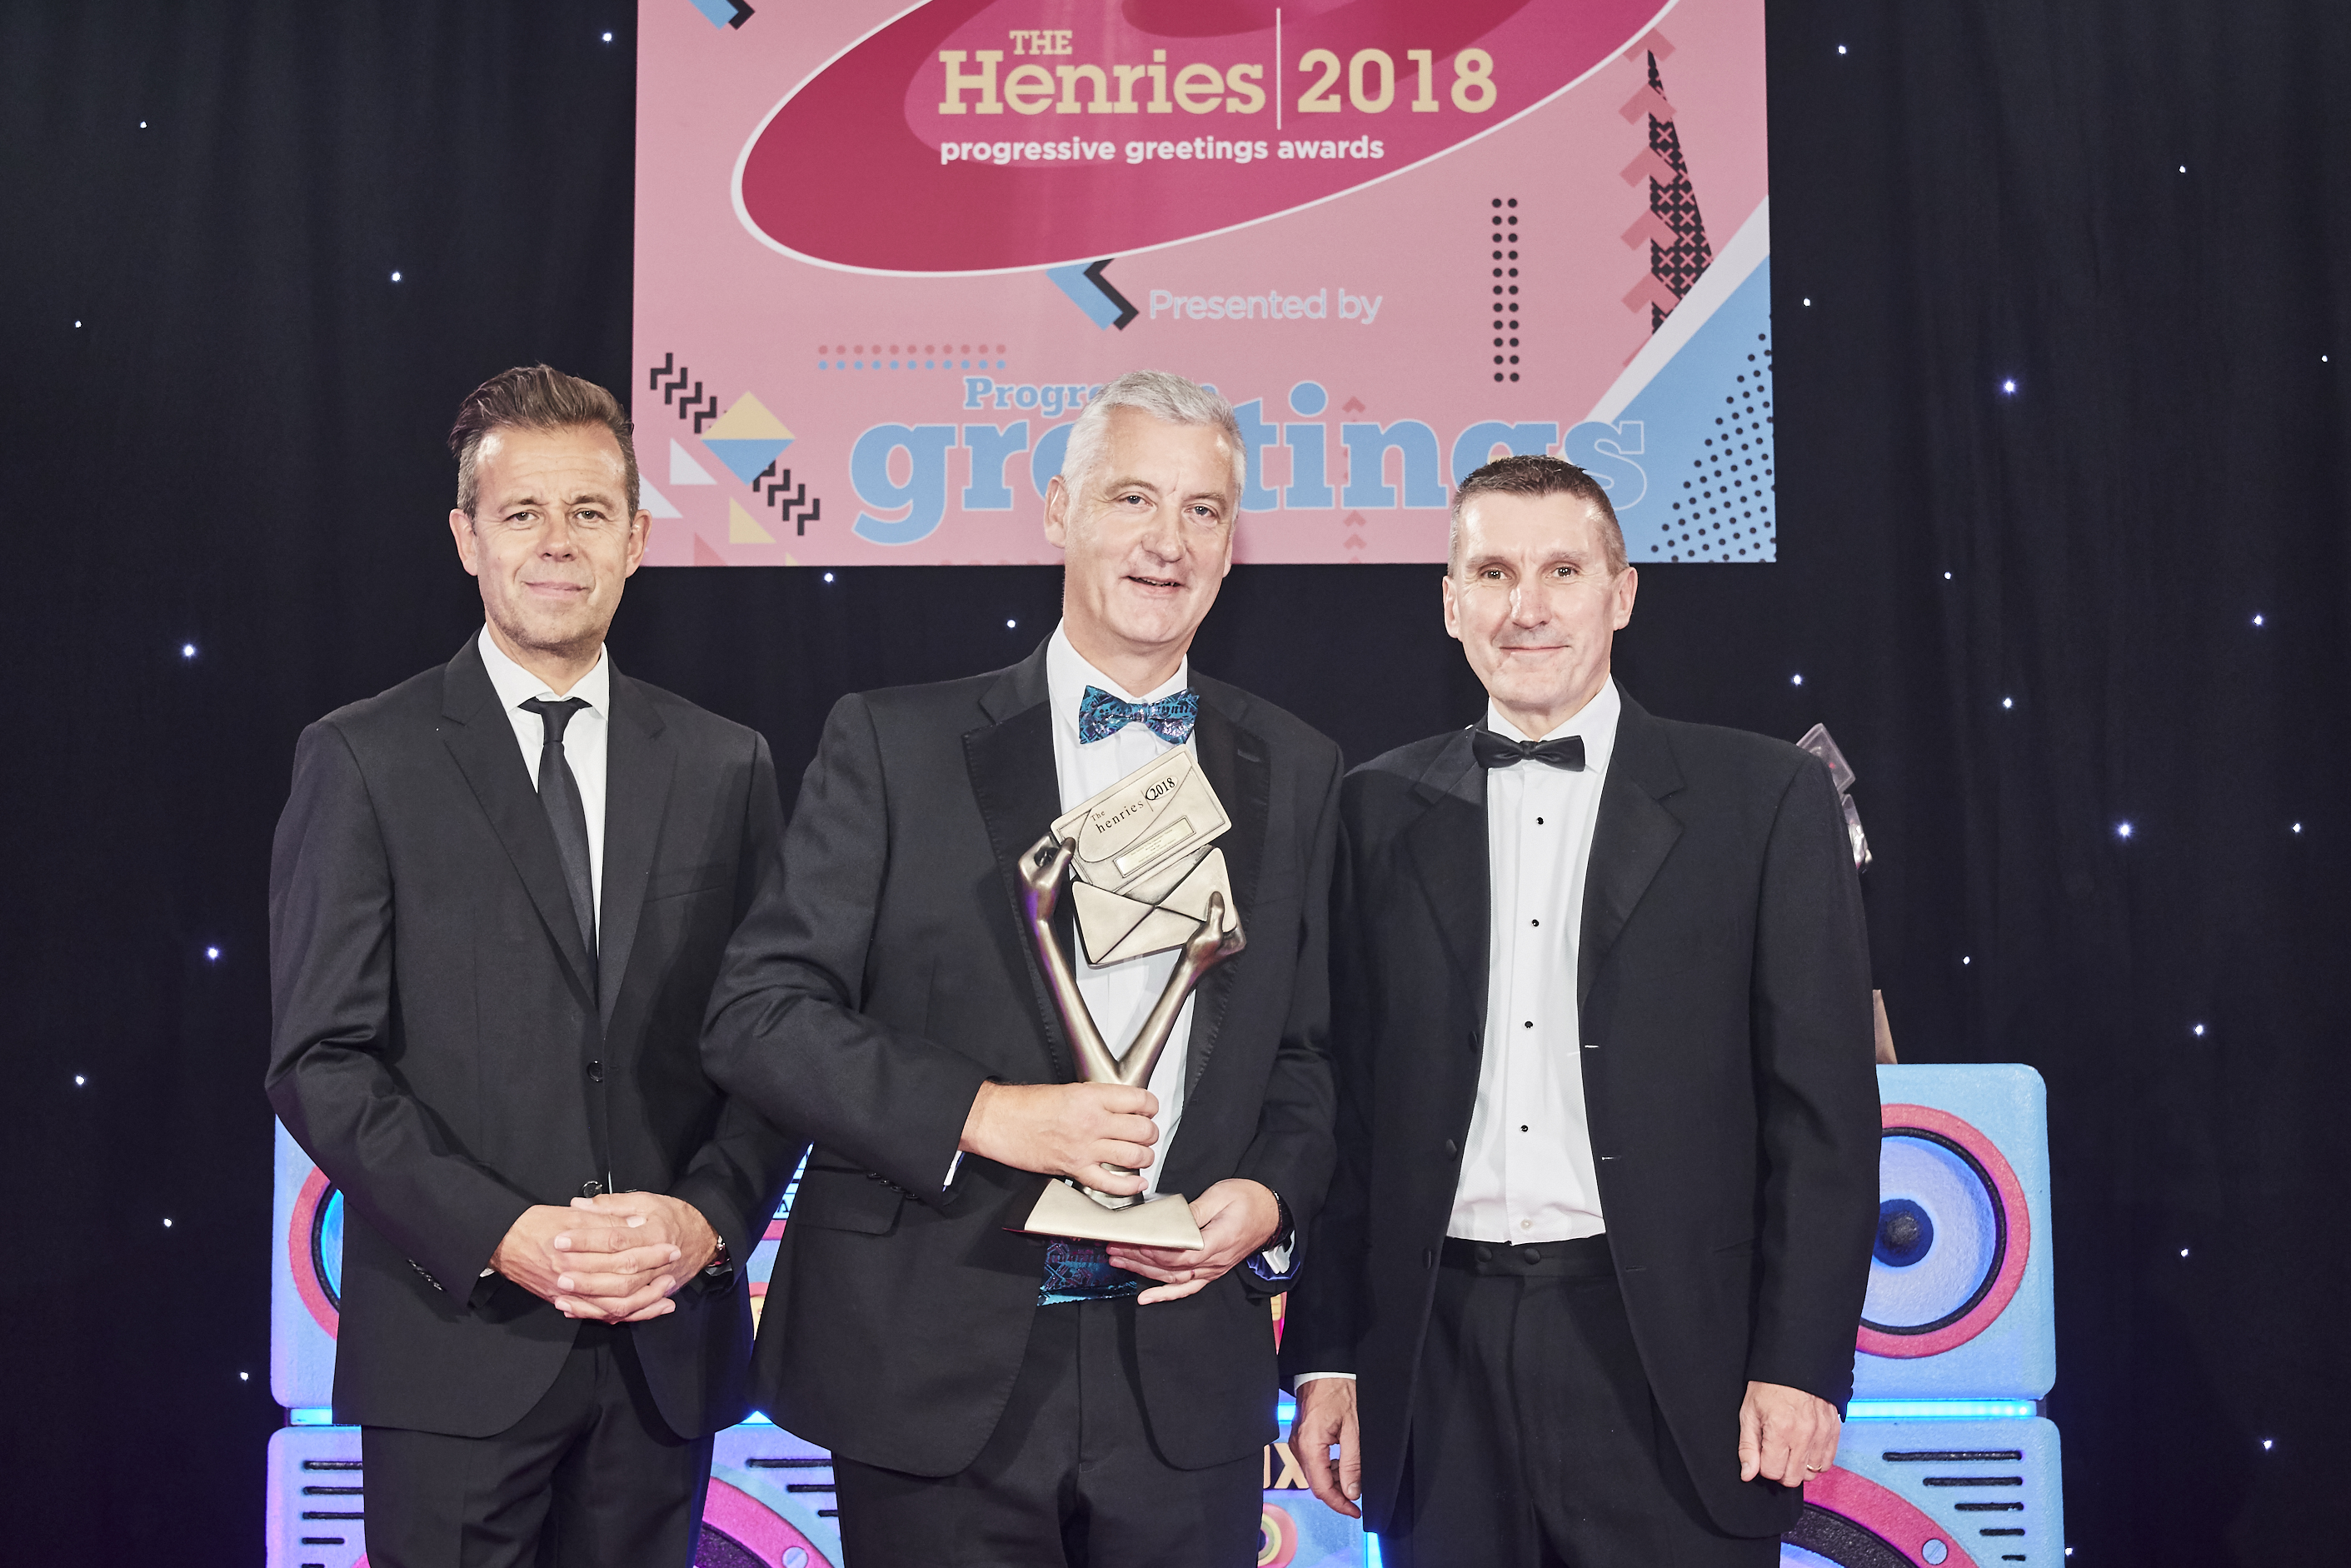 Above: Jarle Tatt, managing director of Noel Tatt (second left) at The Henries 2018 awards collecting the Bronze trophy for Best Service to the Independent Retailer from (right) Richard Campbell of Herbert Walkers, sponsor of this category and Pat Sharp who hosted the event.